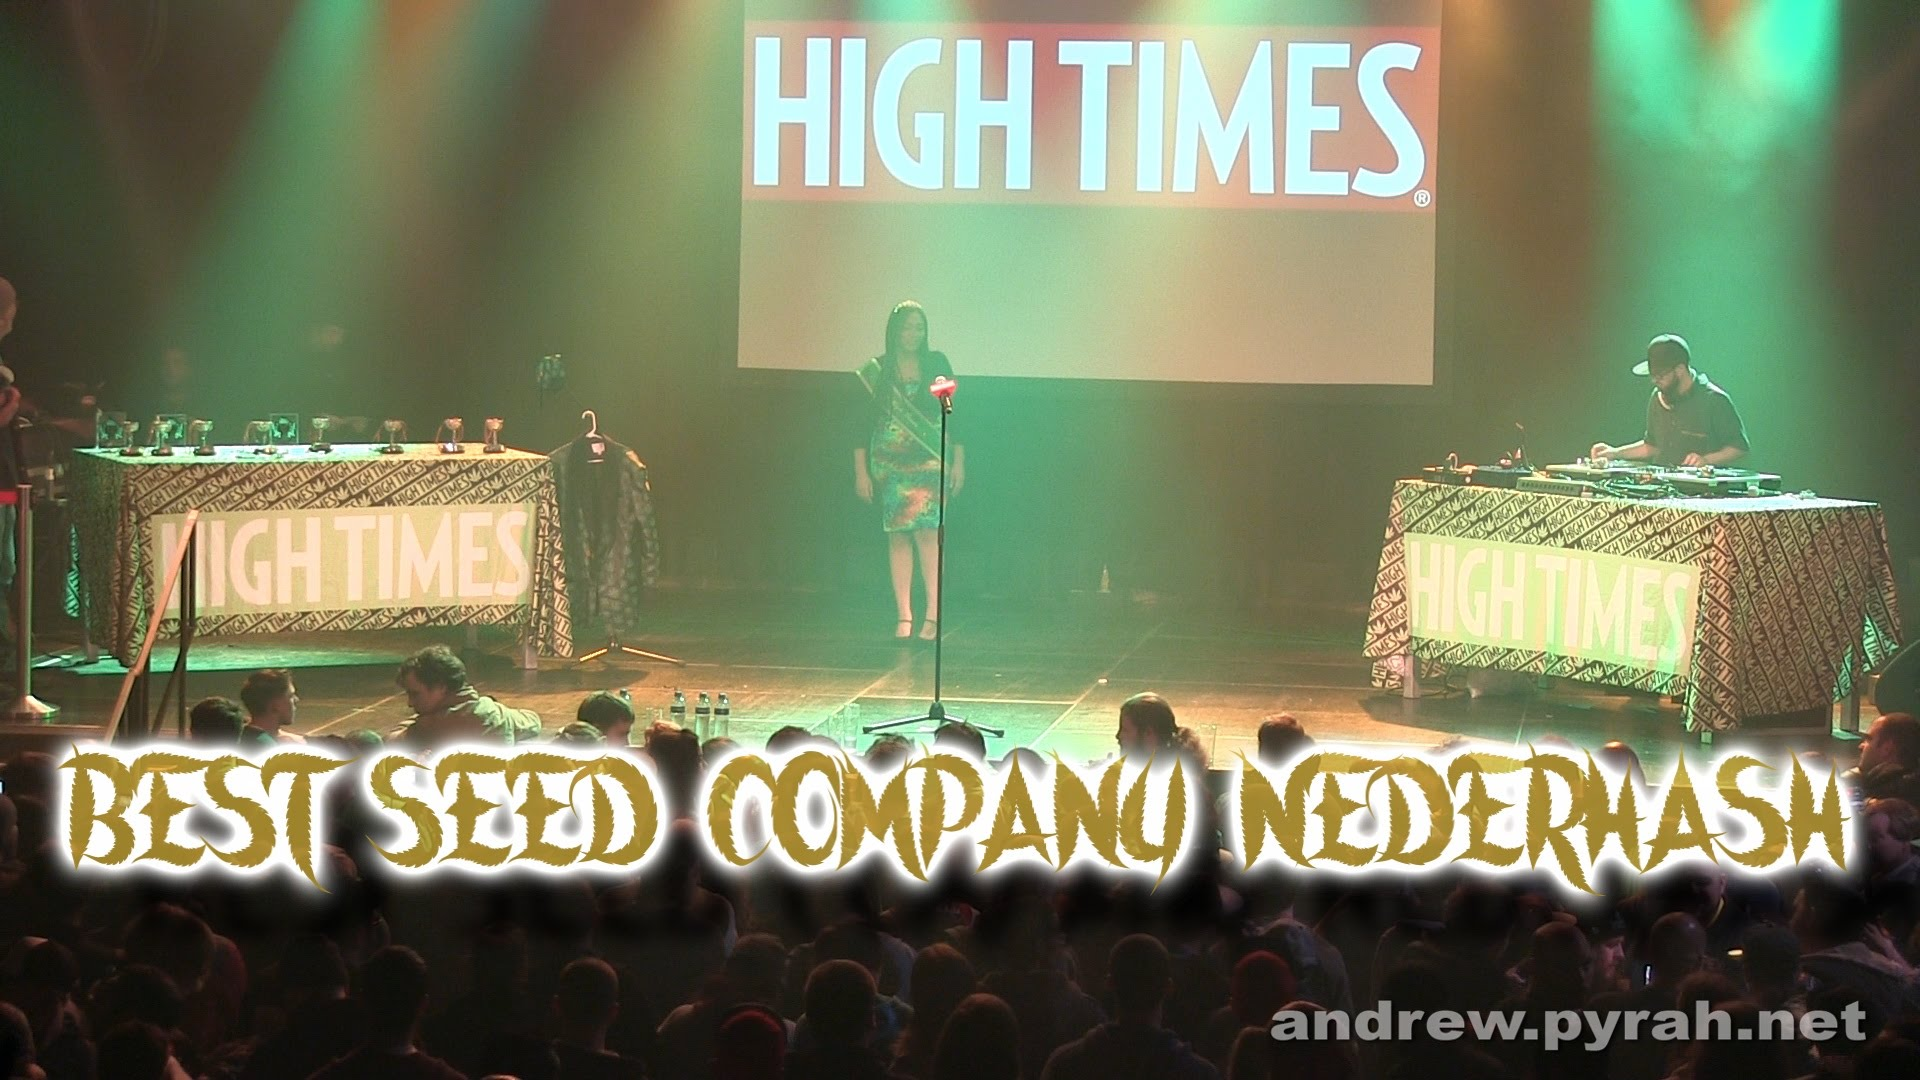 Best Seed Company Nederhash – Amsterdam Cannabis Cup Award Winners 2014